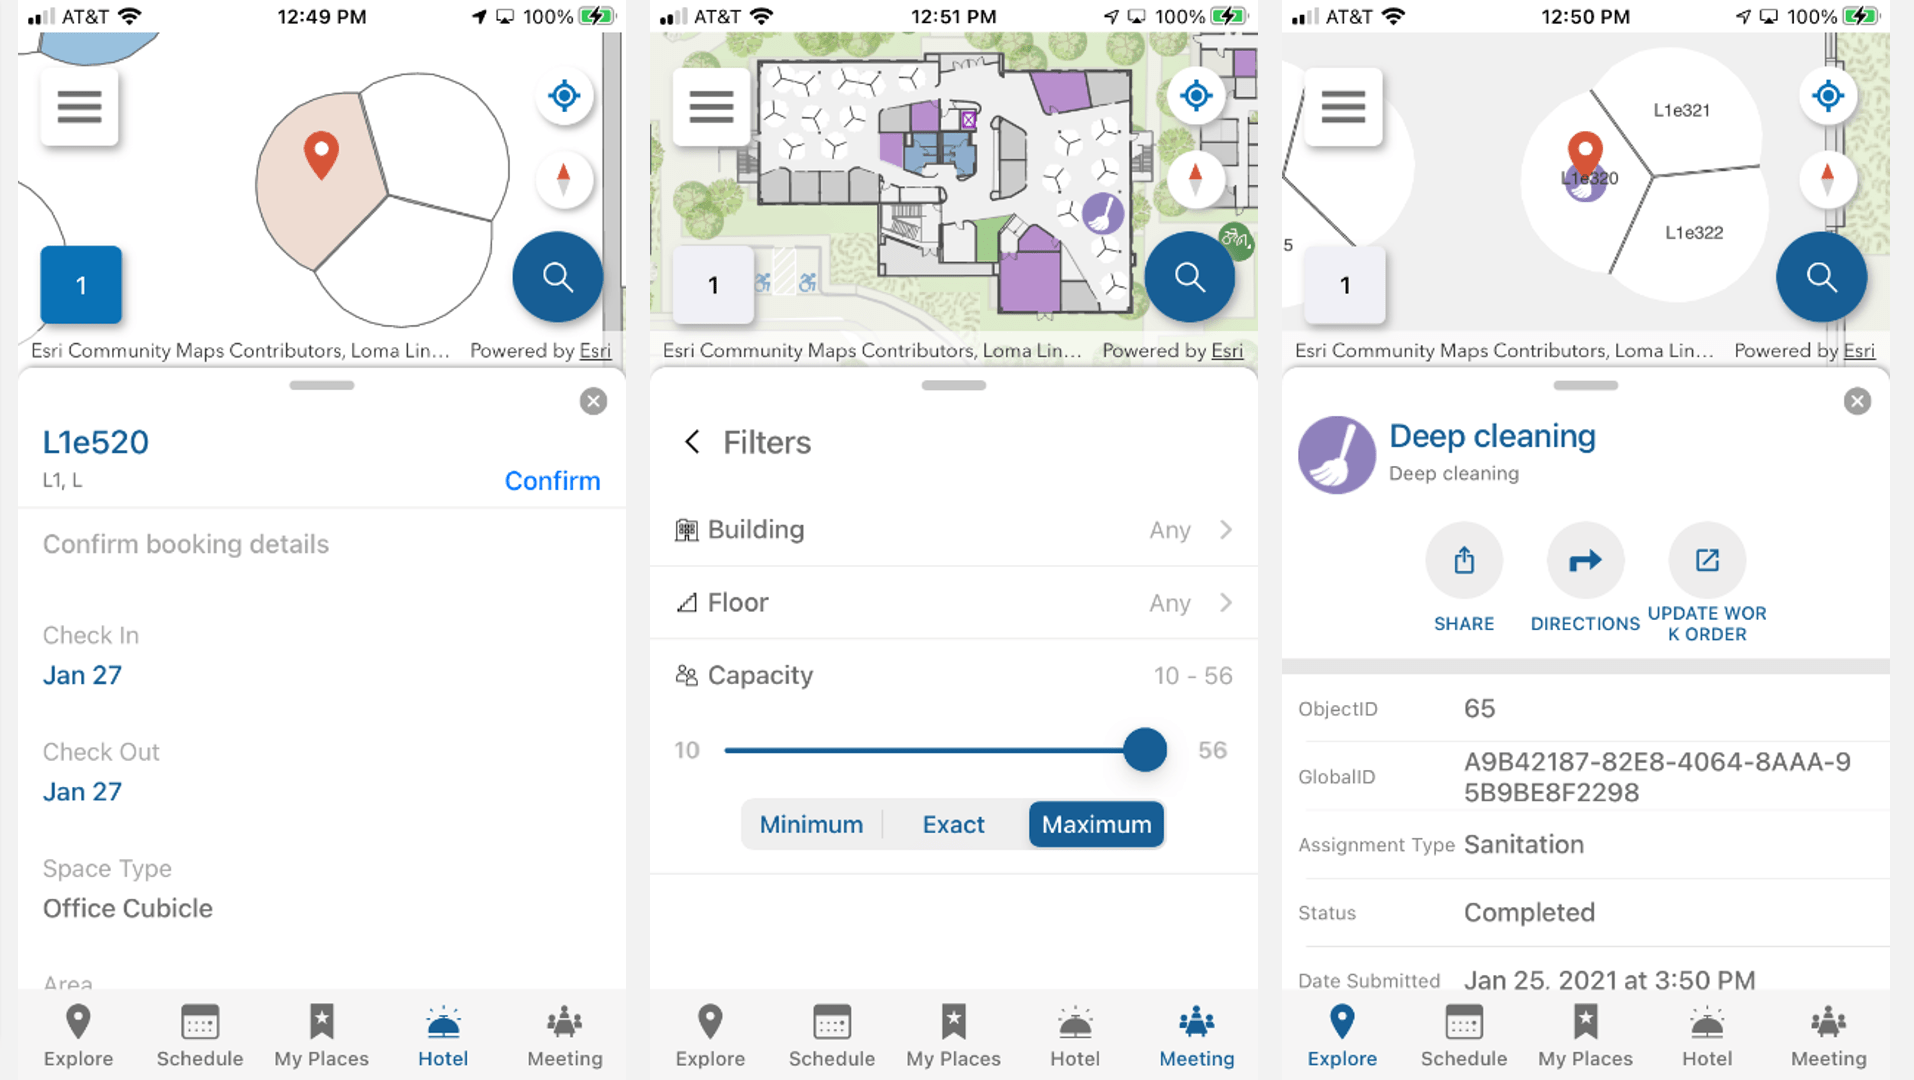 mobile interfaces showing space reservations and service requests